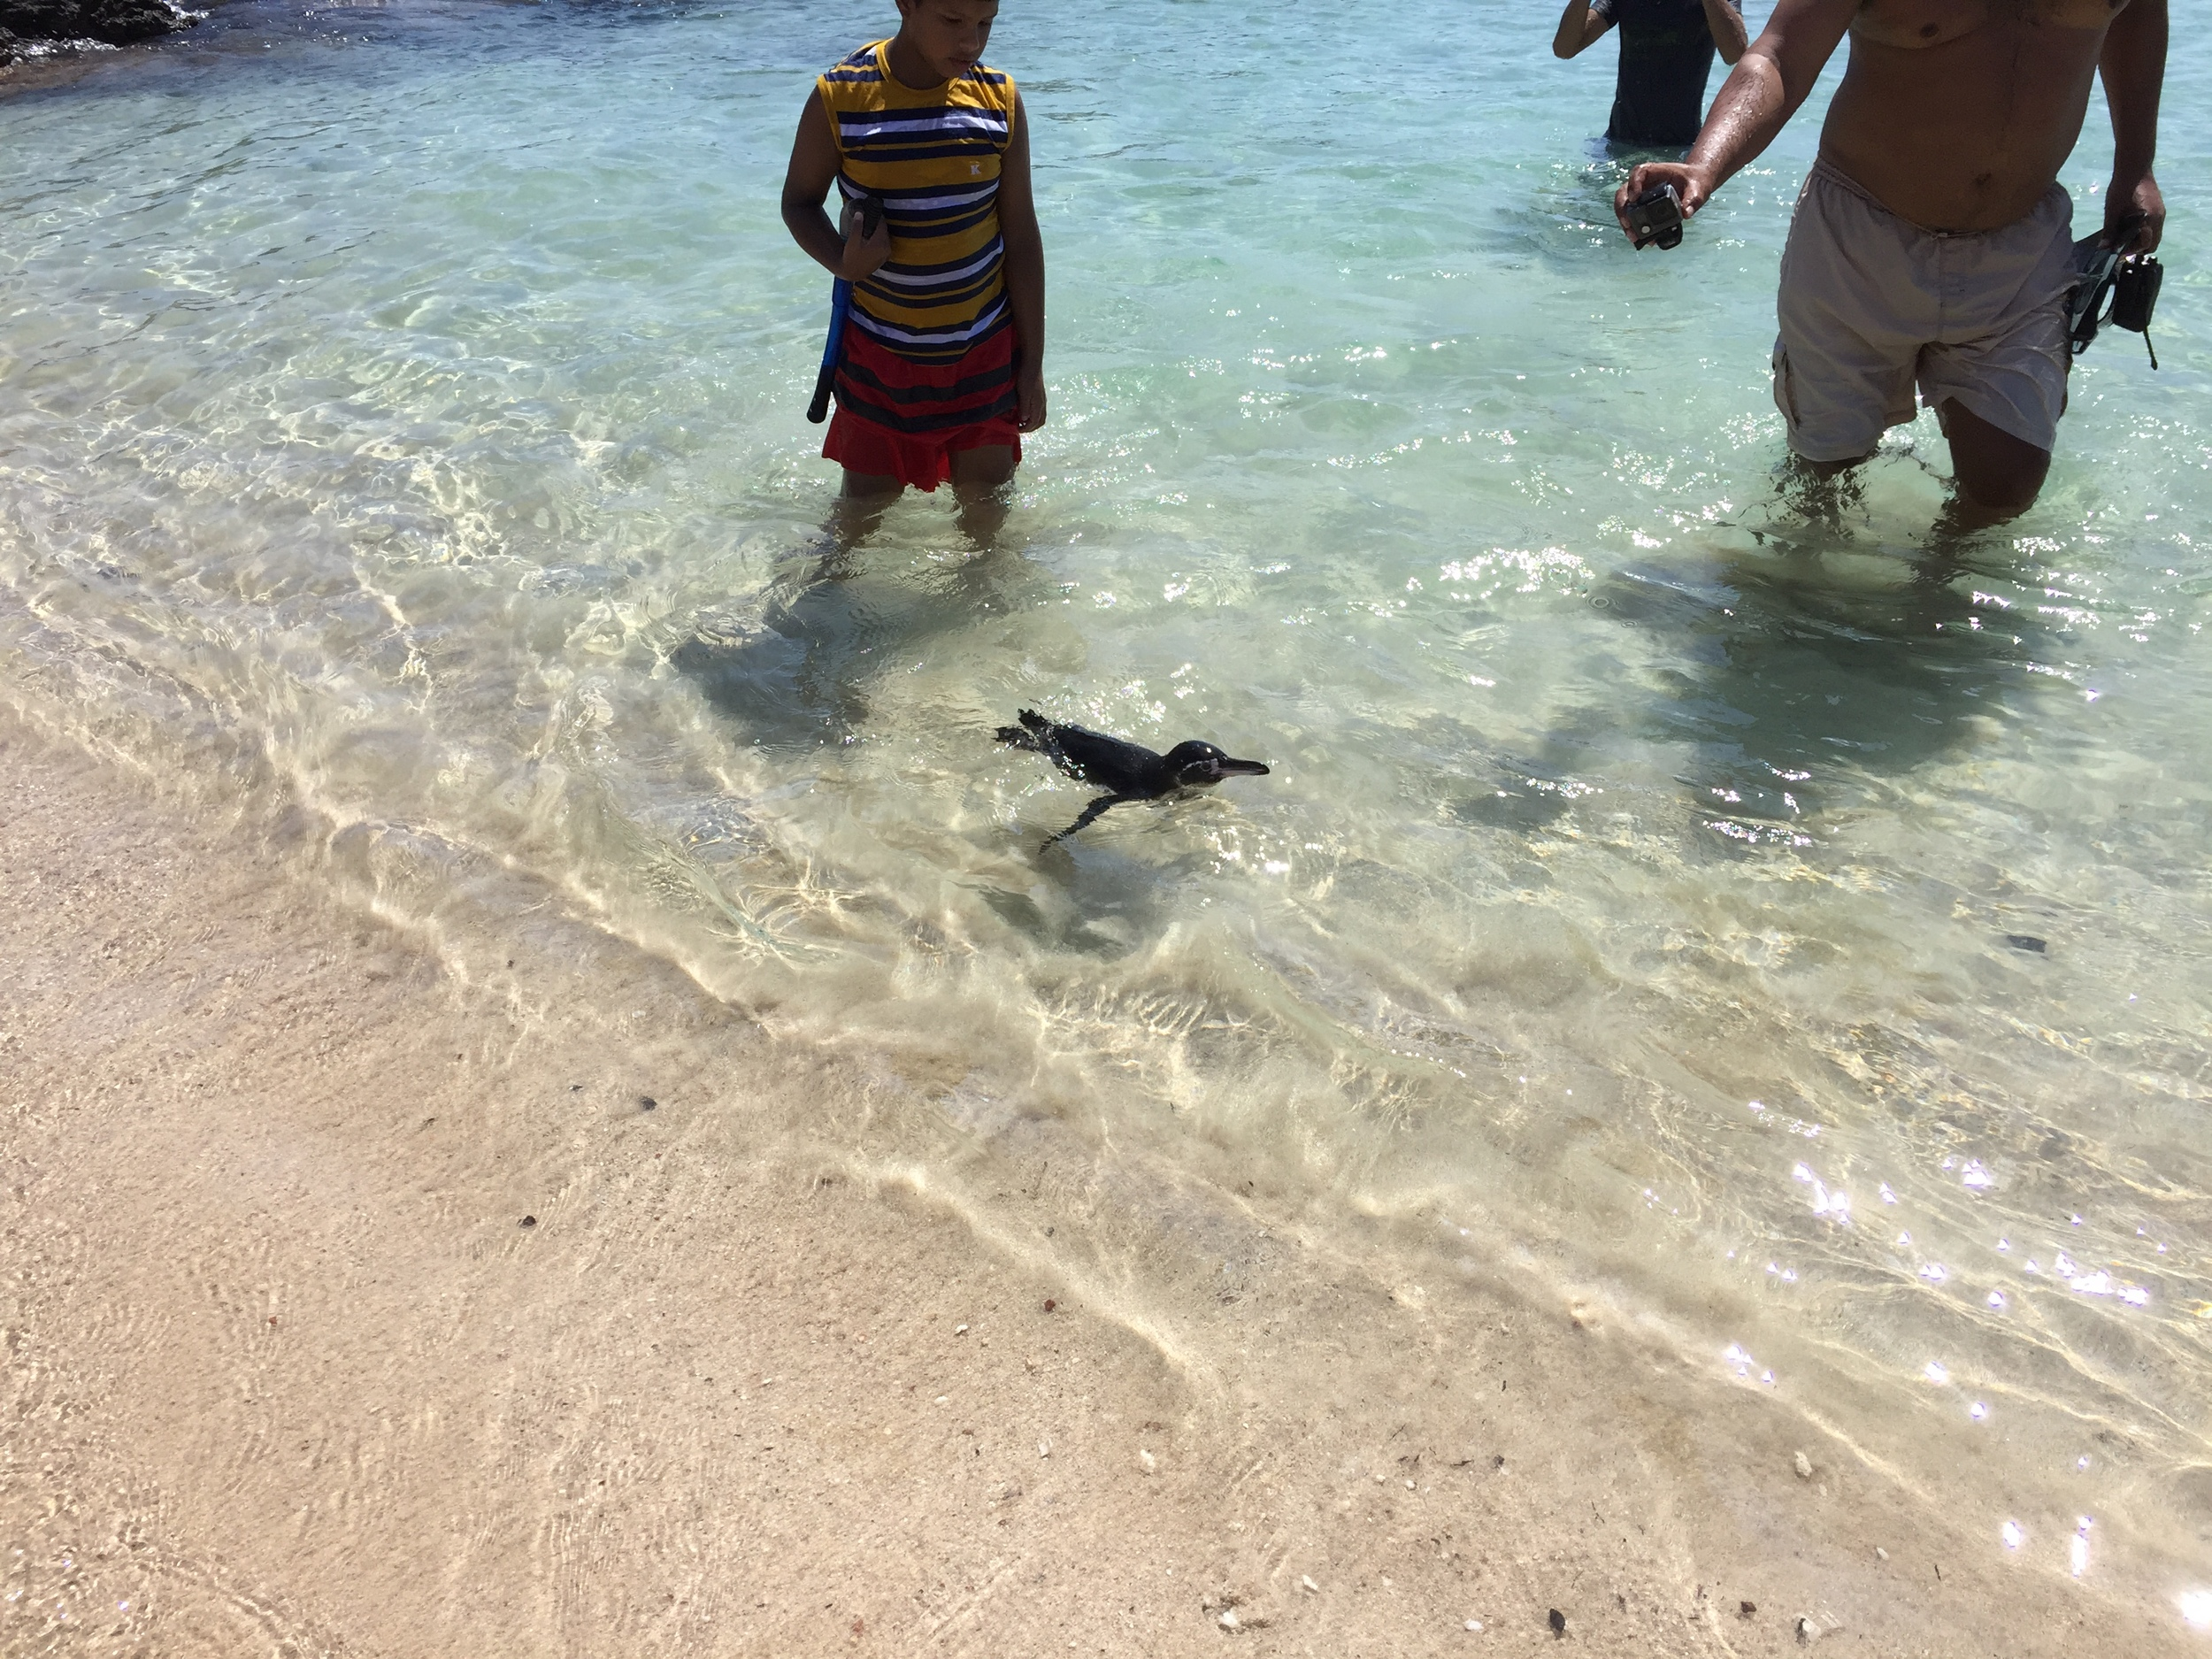 Before he swam ashore, I swam alongside this little penguin as we were snorkeling on Santiago Island in the Galapagos.